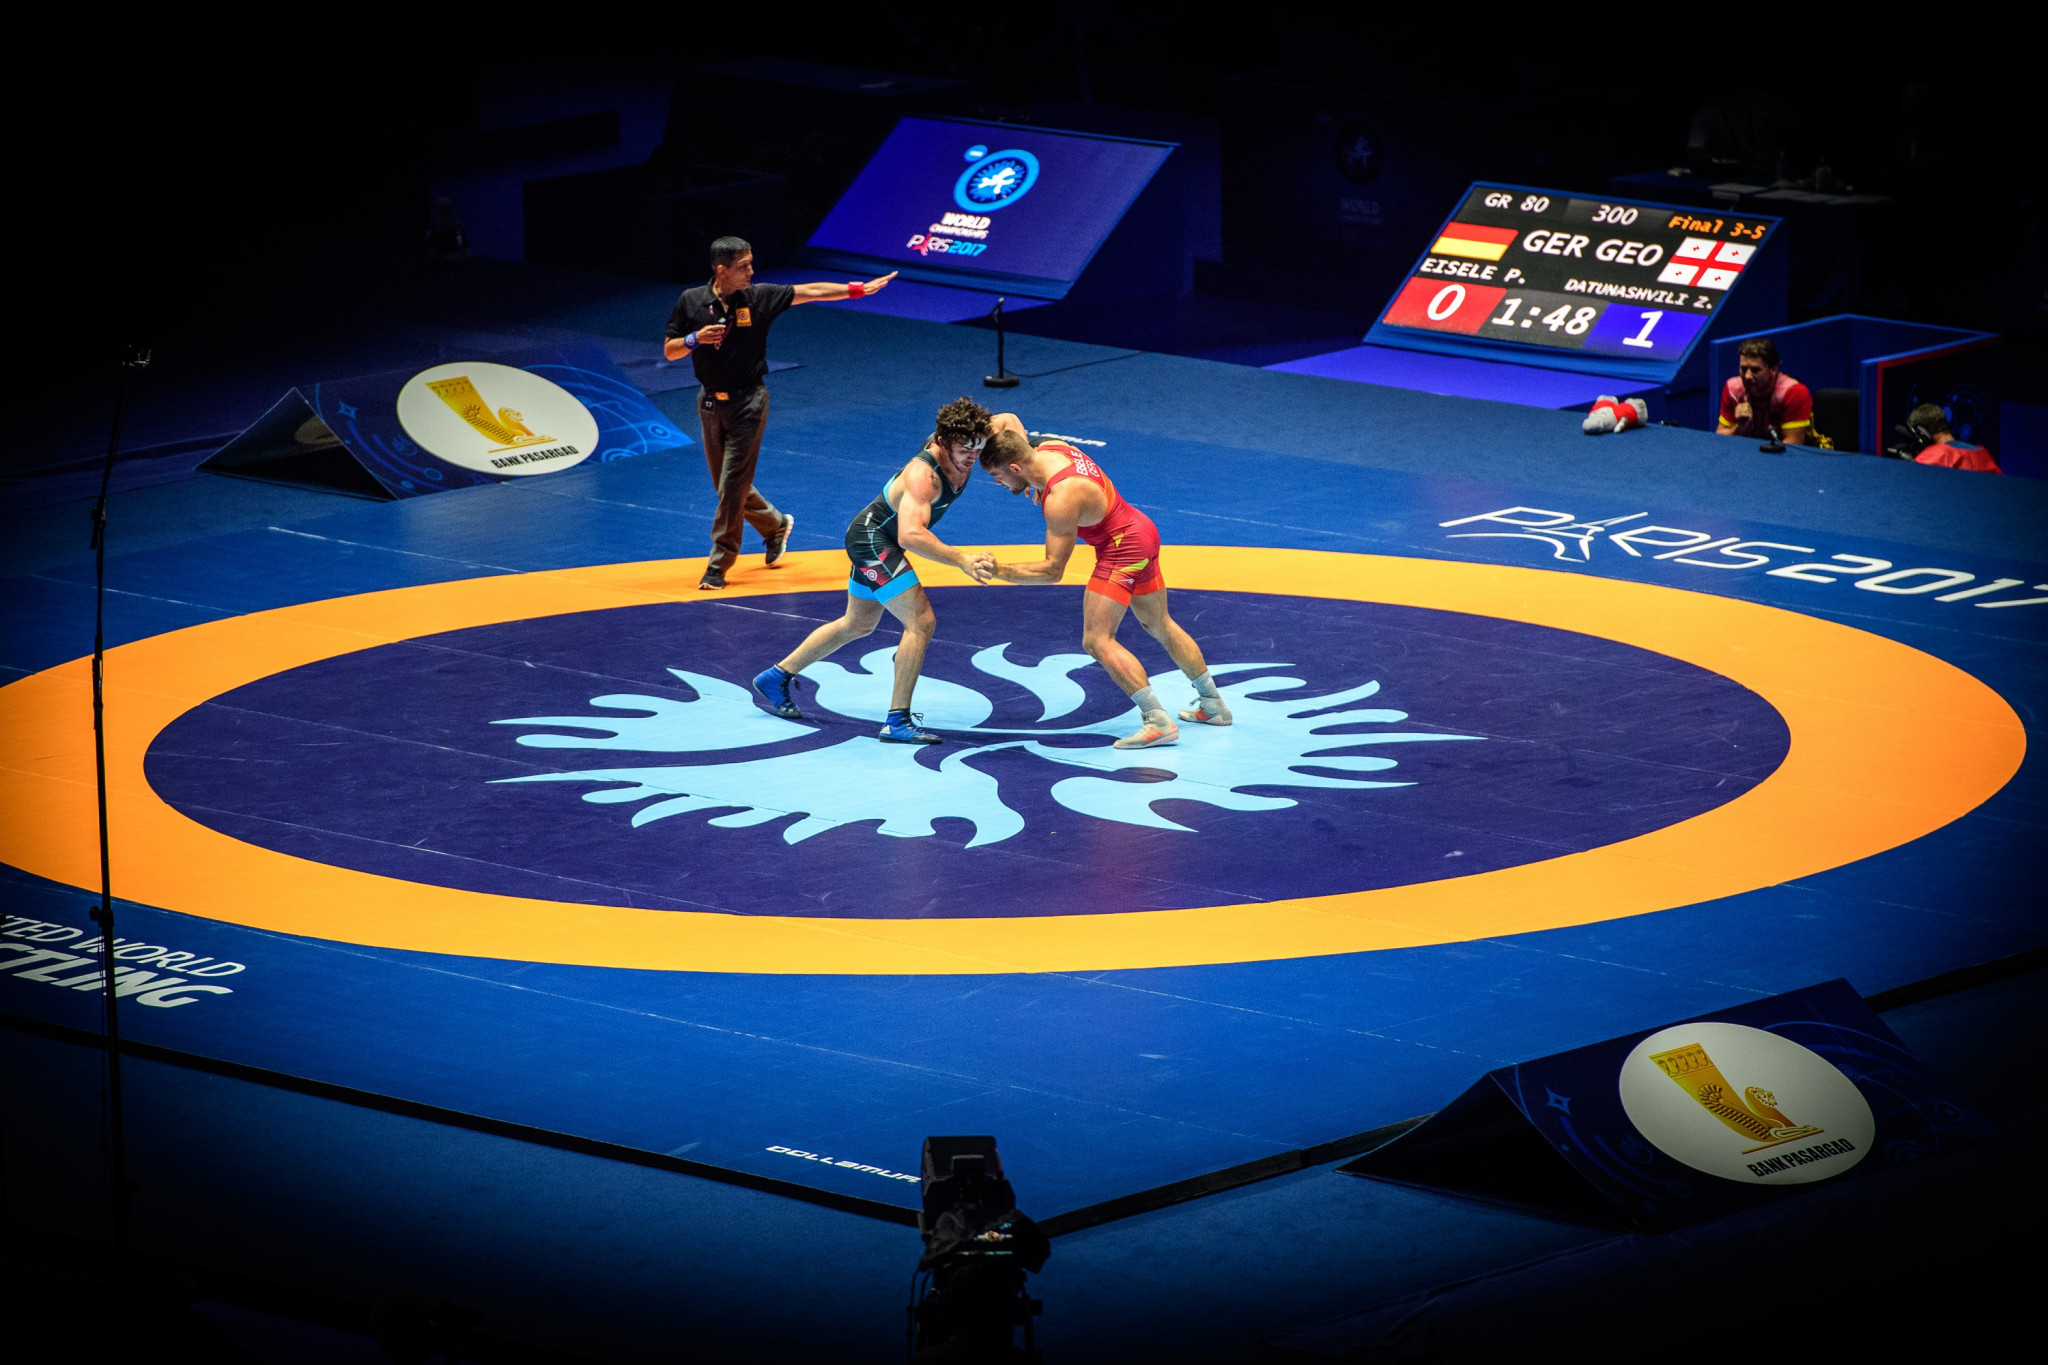 United World Wrestling have announced changes to their 2019 Ranking Series ©UWW